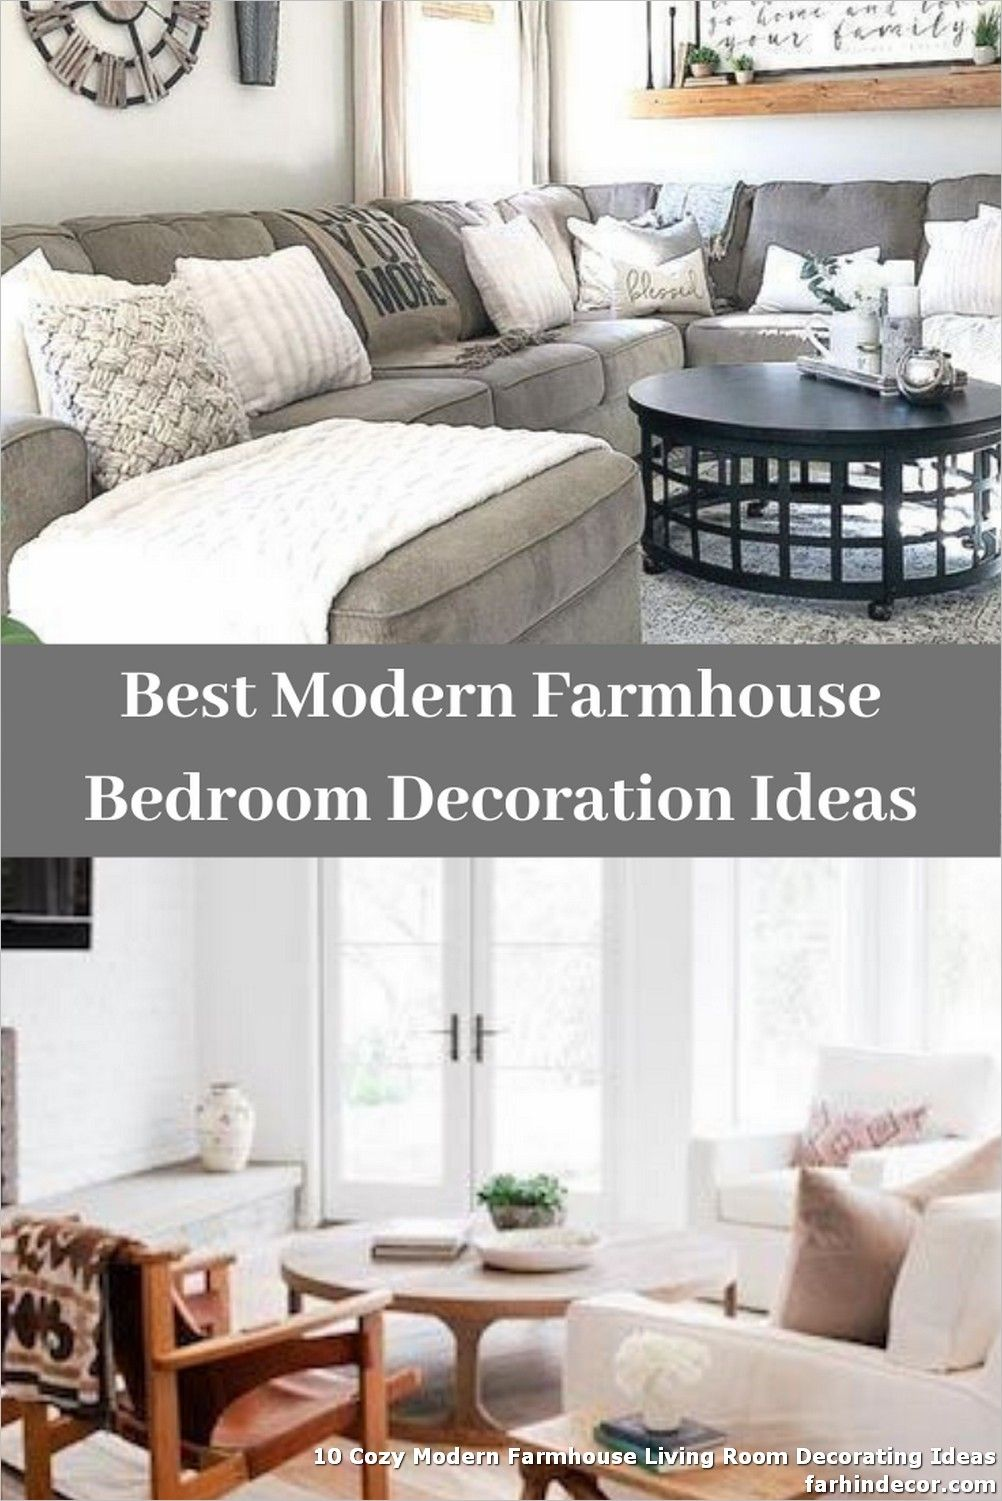 10 Cozy Modern Farmhouse Living Room Decorating Ideas In 2020 Modern Farmhouse Living Room Farm House Living Room Farmhouse Living